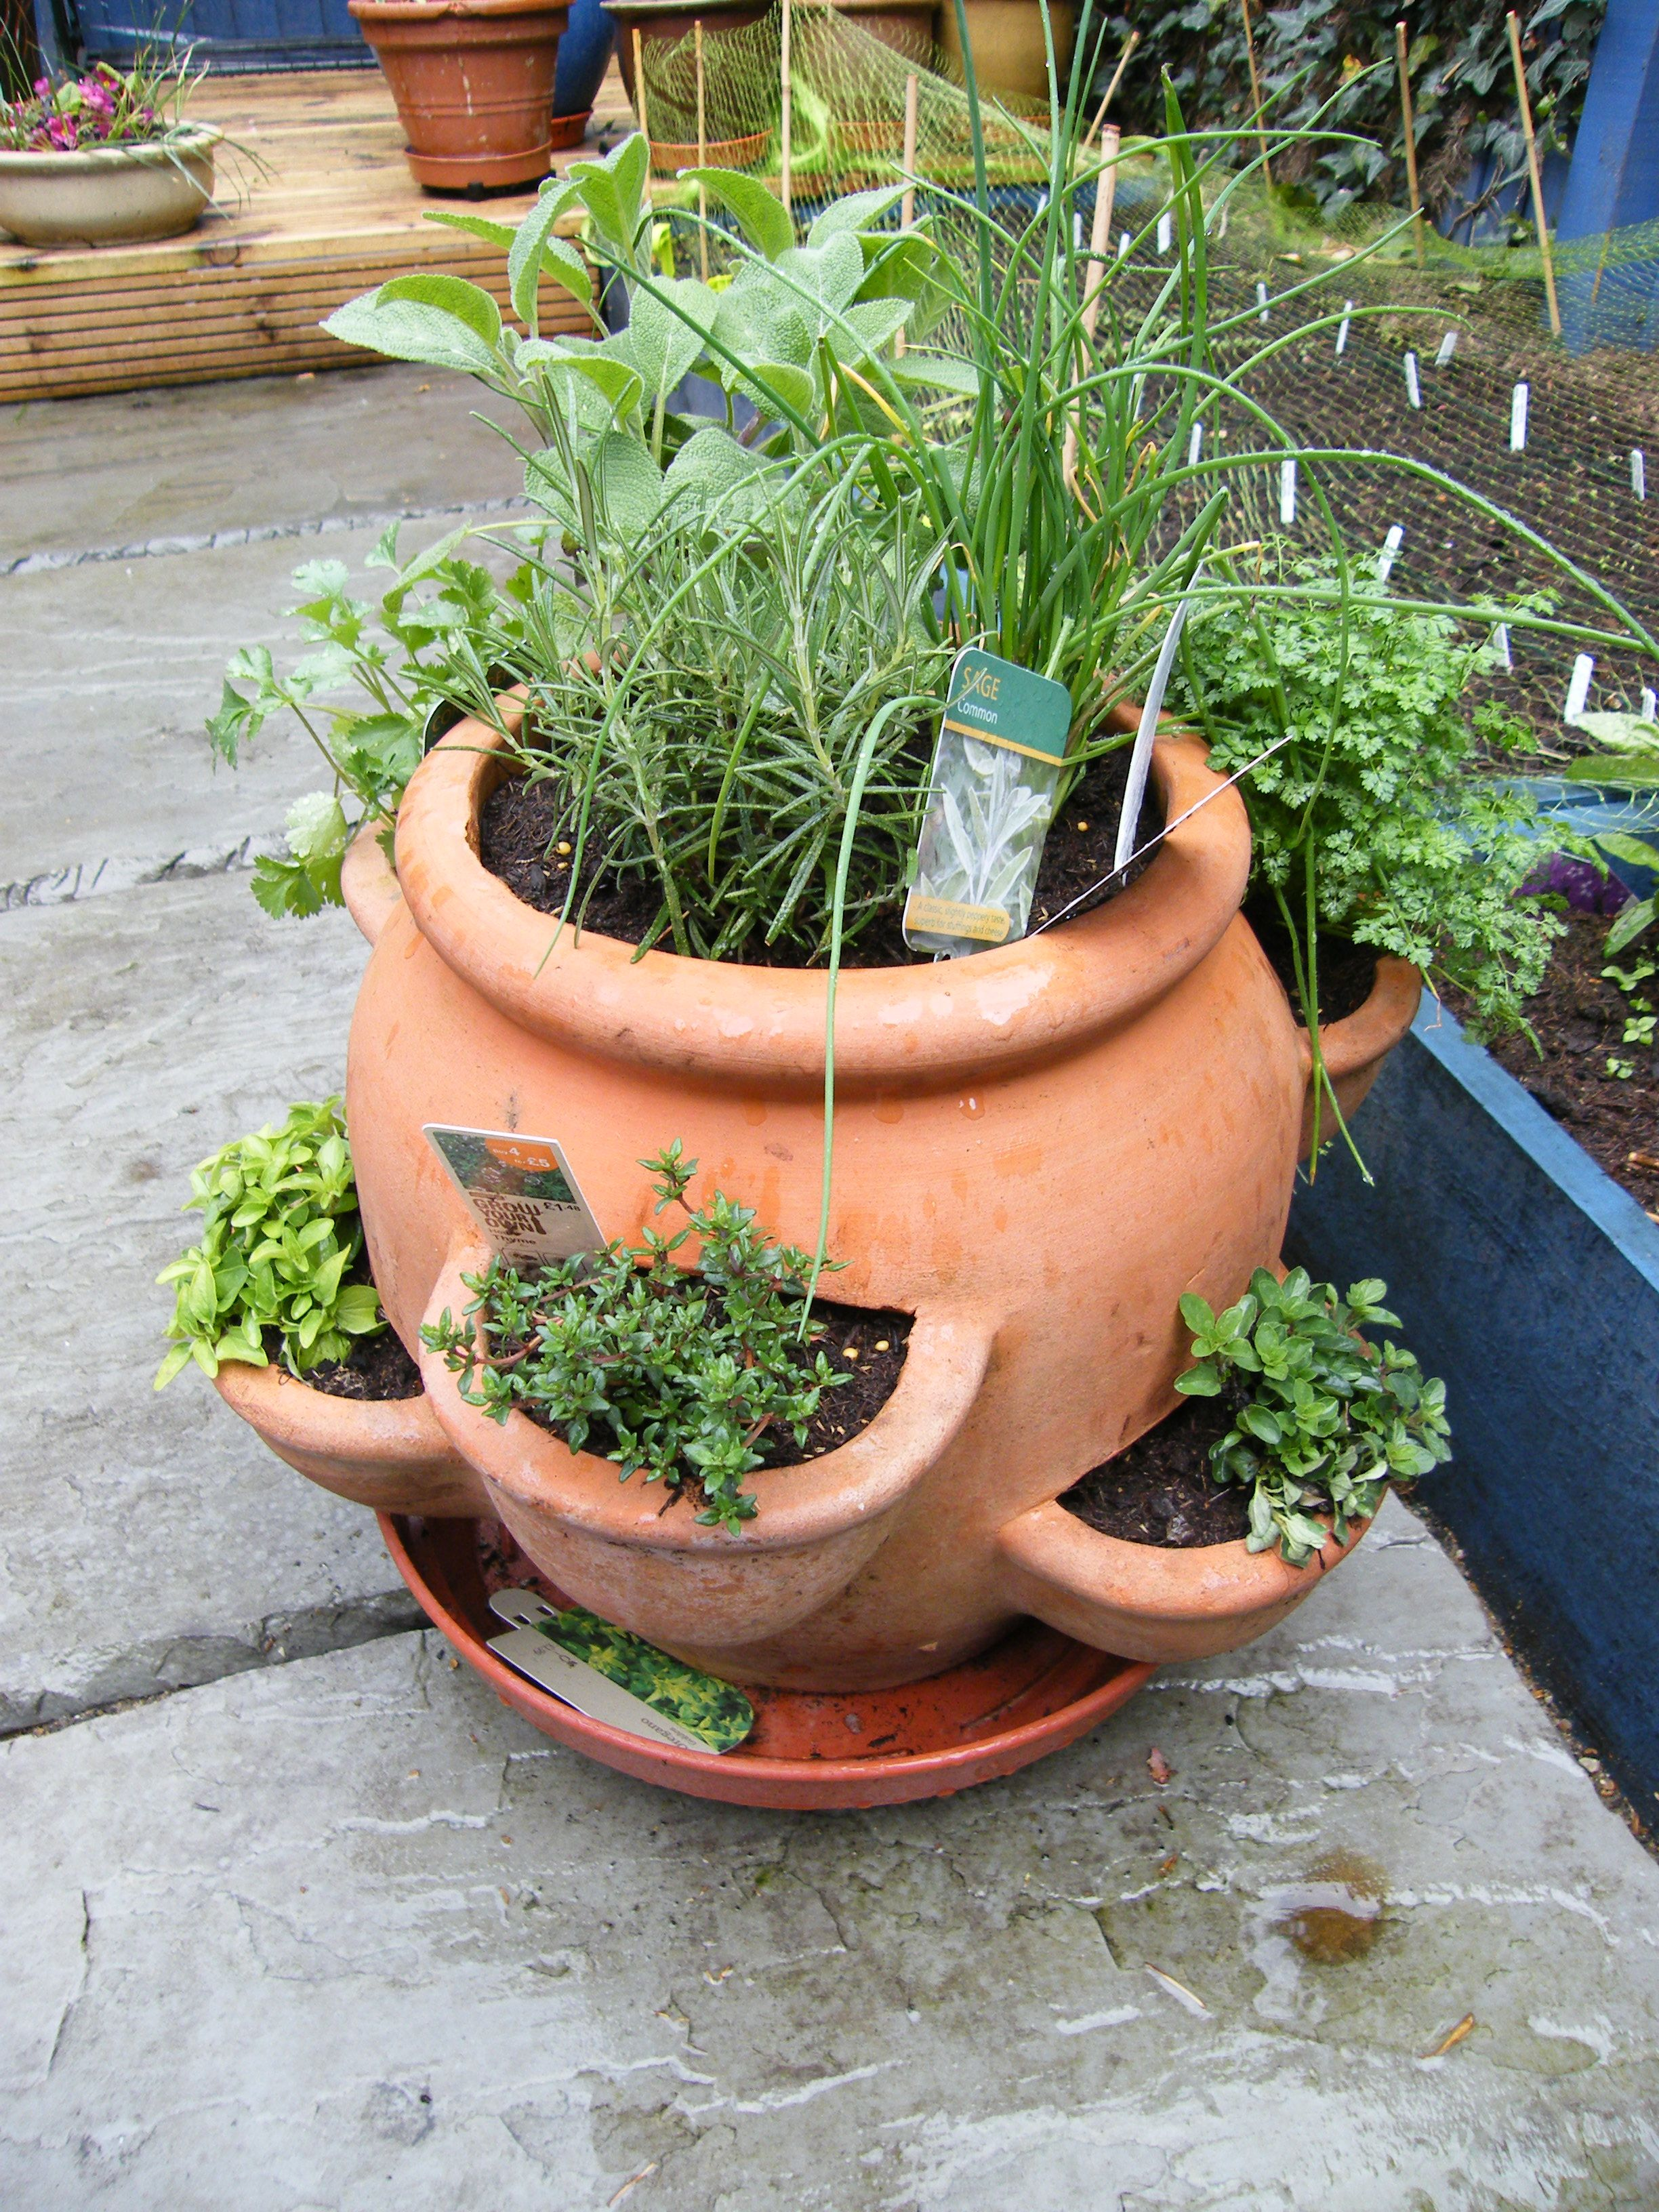 How To Plant Herb Pots Thyme And Oregano Are Low Growing Plants So Place Them In A Lower Hole Chives Dill Grow Slightly Taller These Should Be